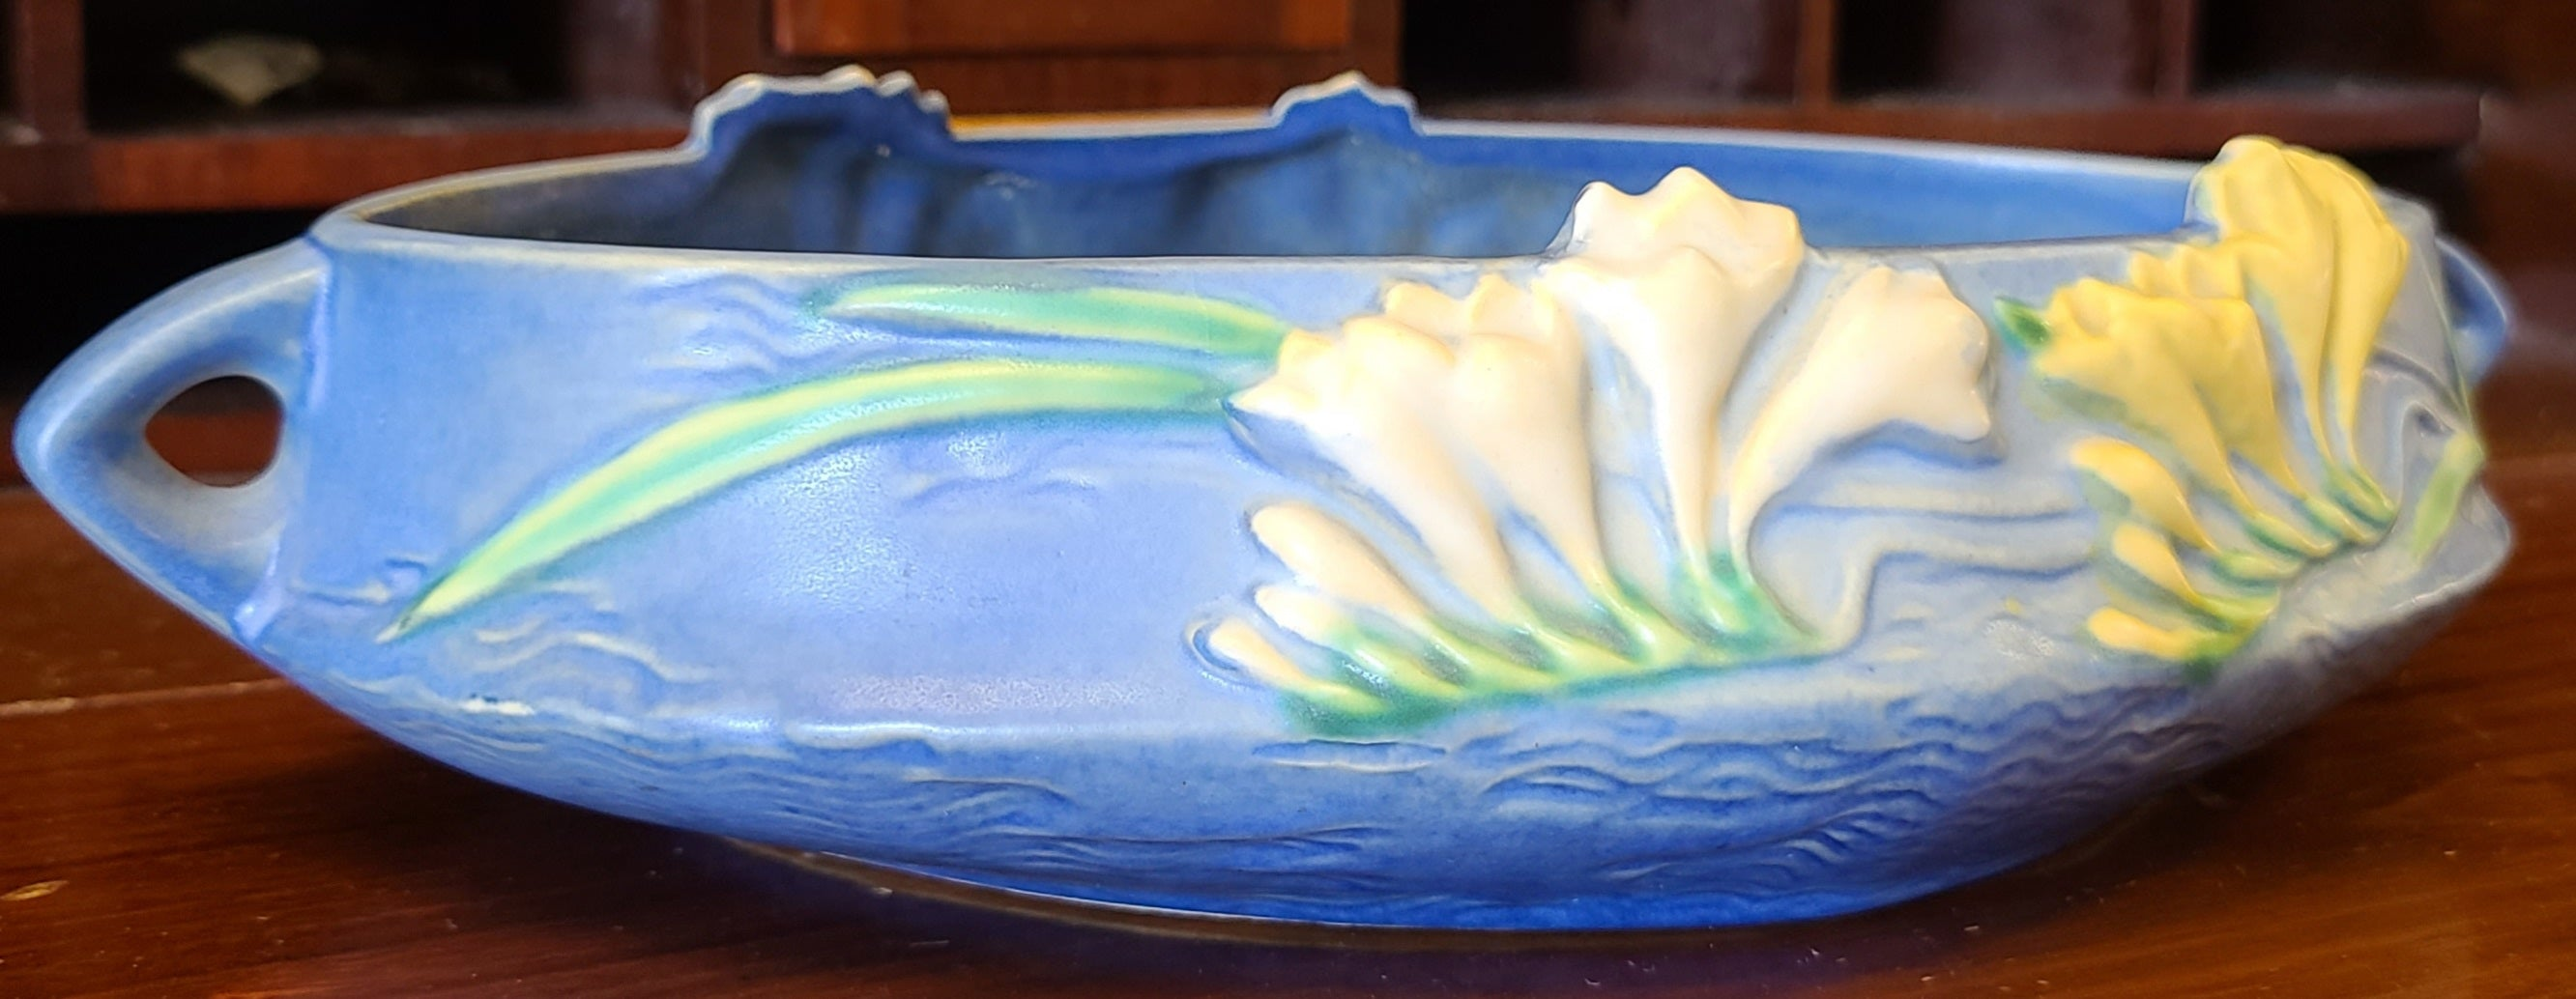 "Roseville 1156-10"" Blue Freesia Console Bowl"